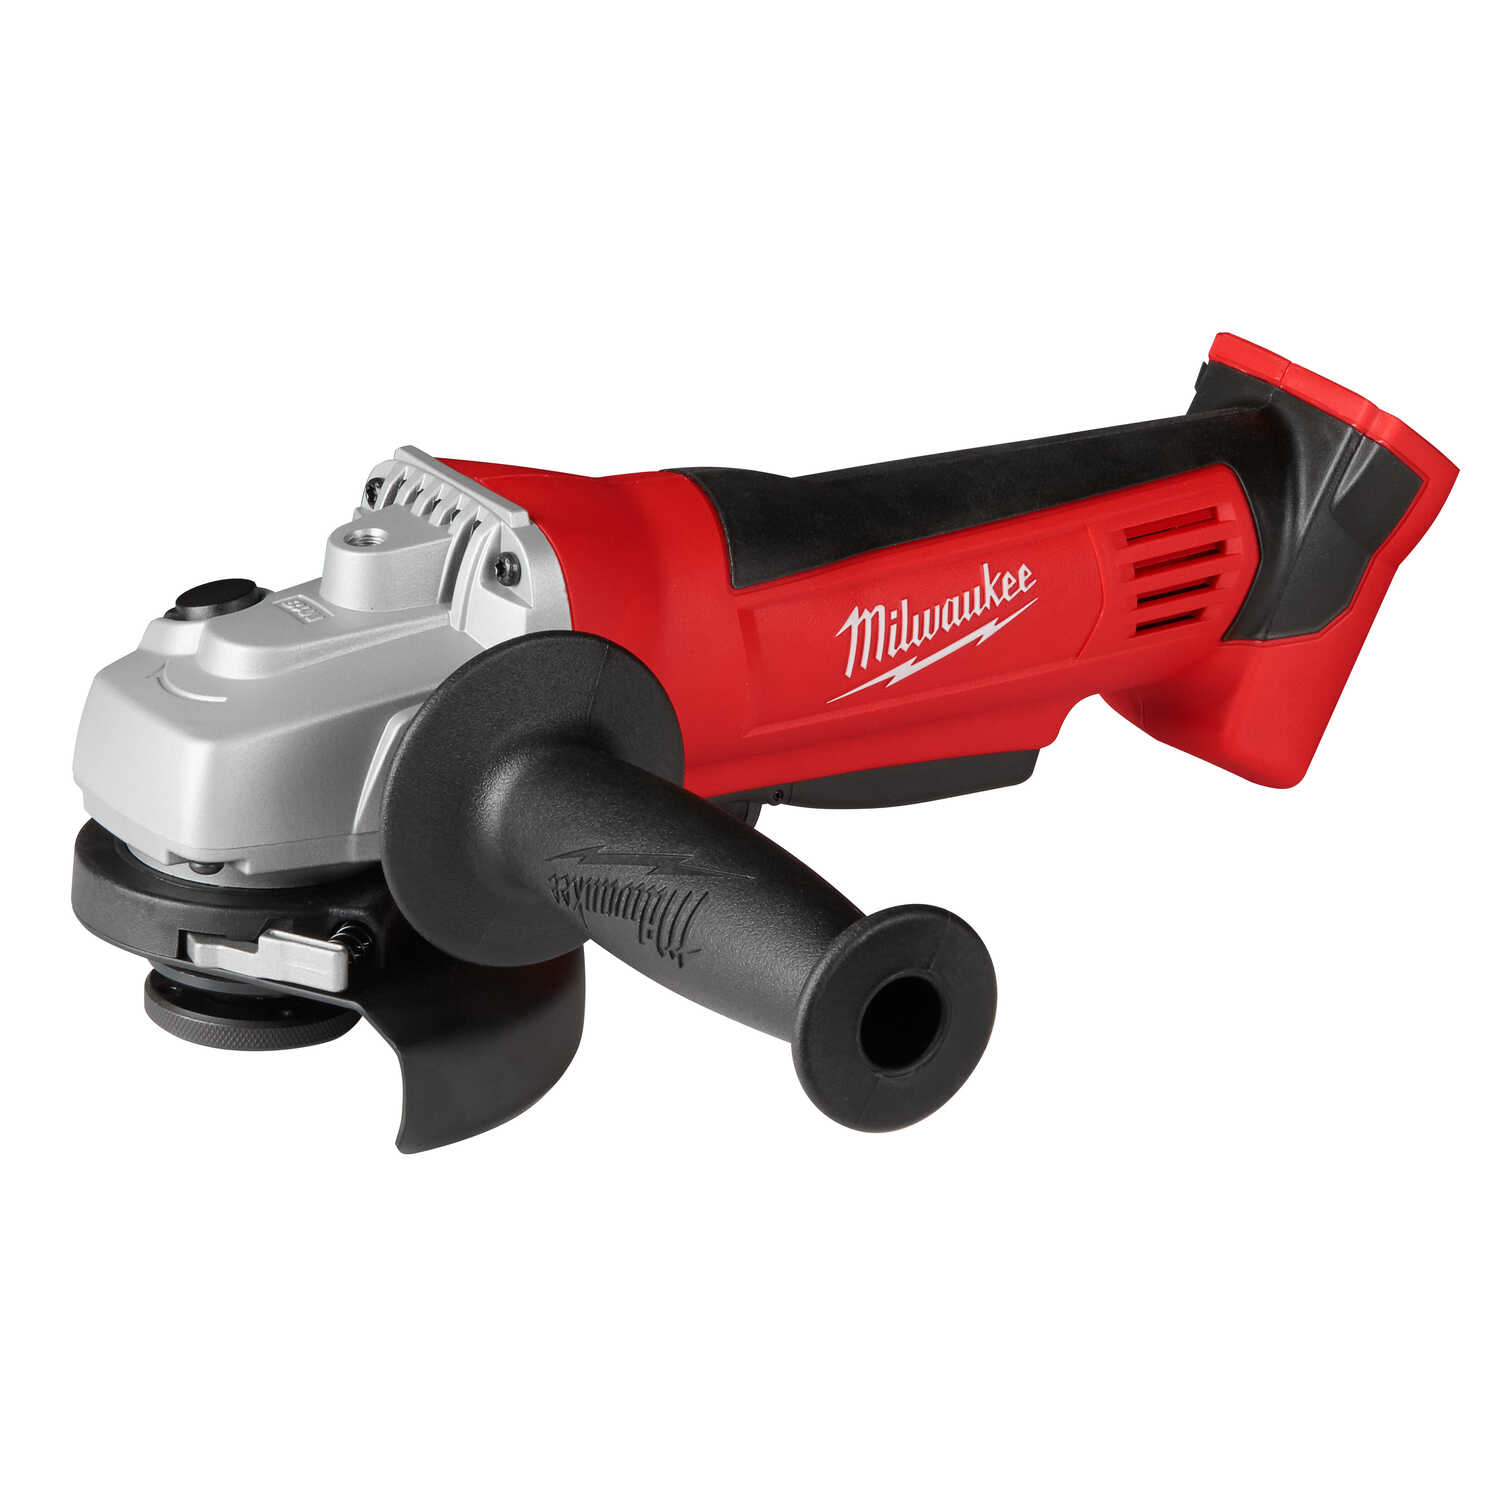 Milwaukee  M18  18 volt 4-1/2 in. Straight Handle  Cordless  9000 rpm Cut-Off/Angle Grinder